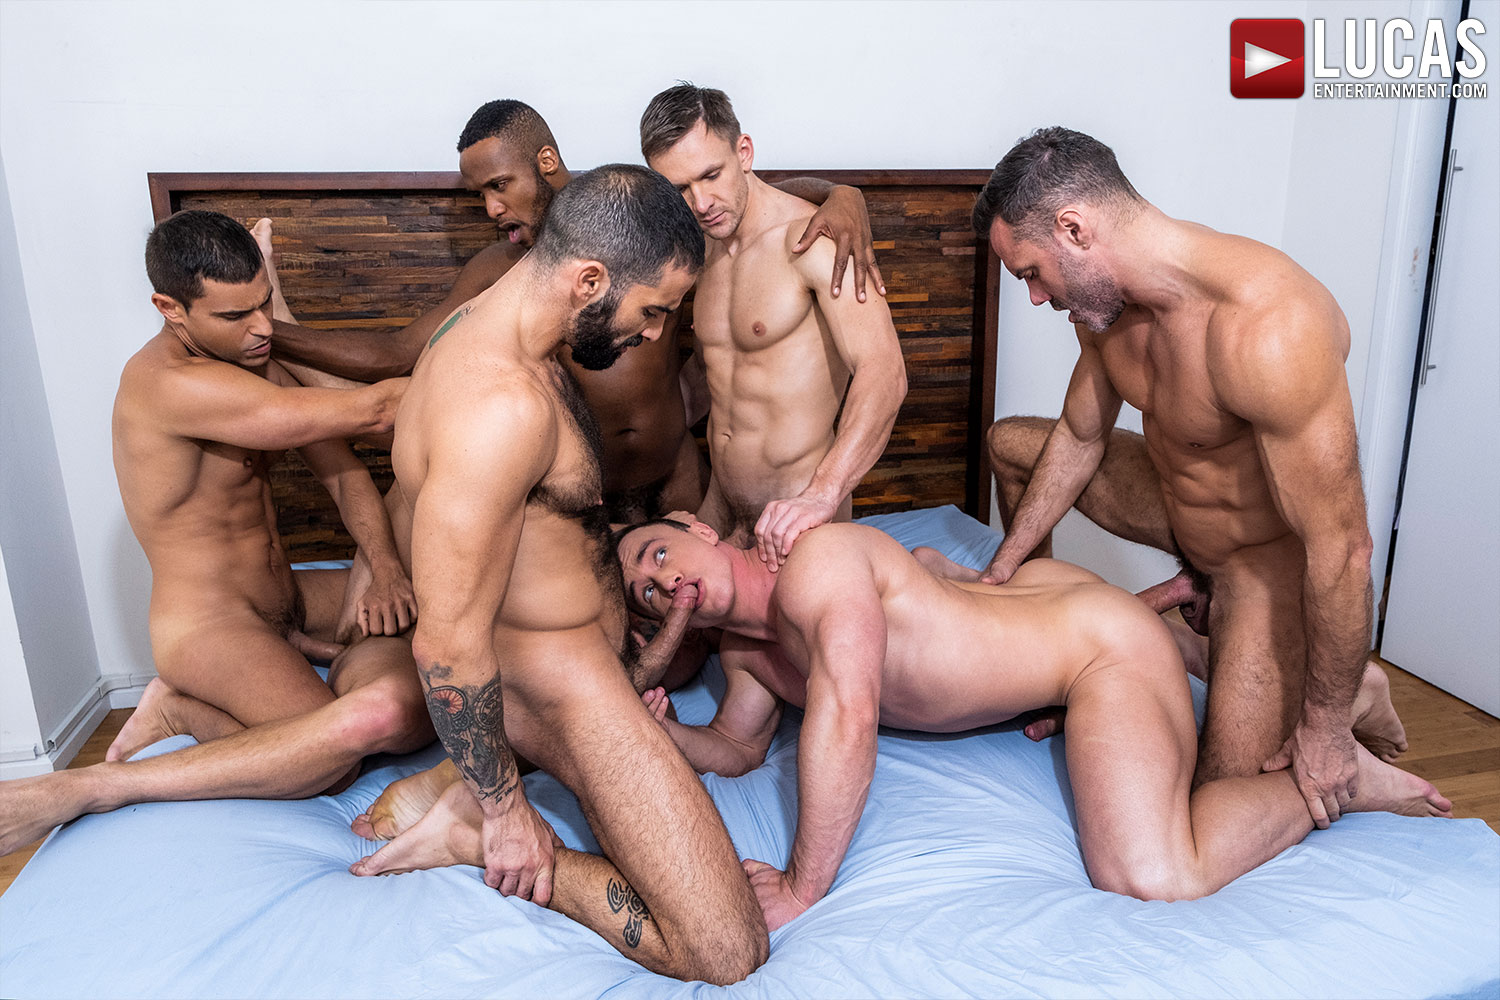 Ganged, Banged, And Pounded - Gay Movies - Lucas Entertainment